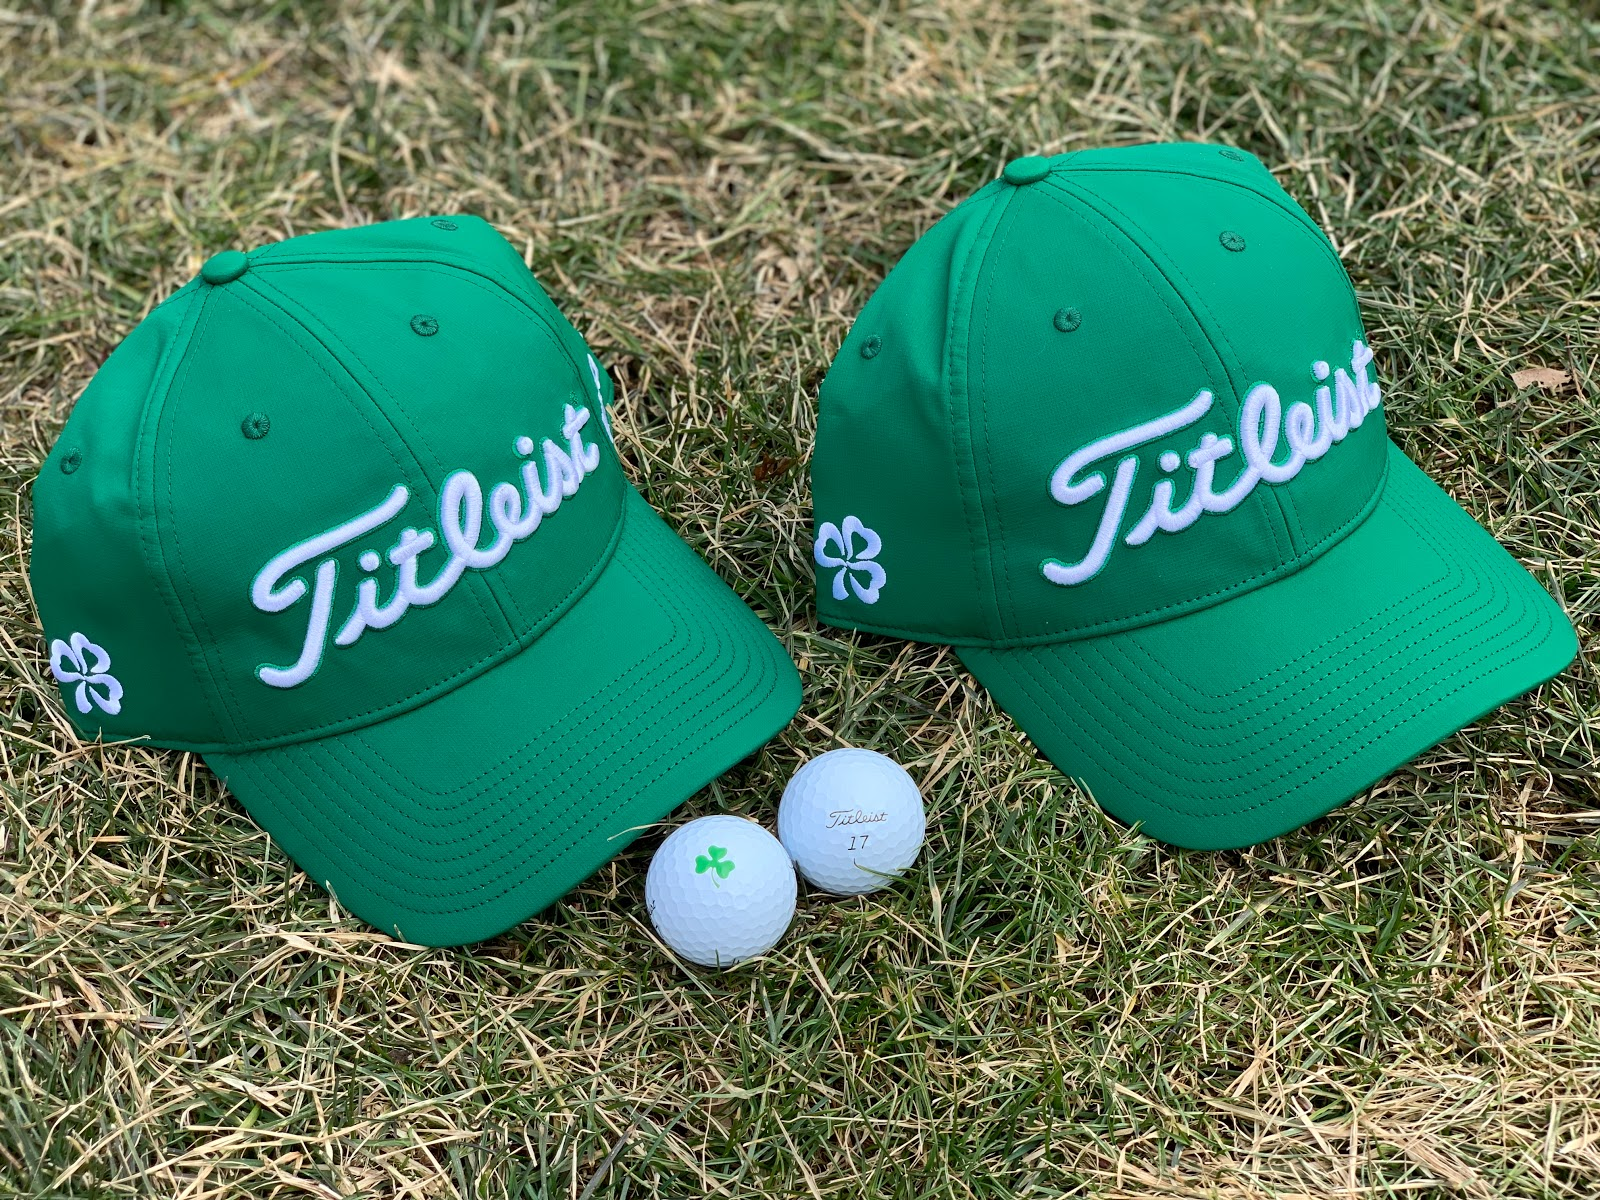 232fd2d00191f This is the first time in 13 years THE PLAYERS will be contested on St.  Patrick s Day